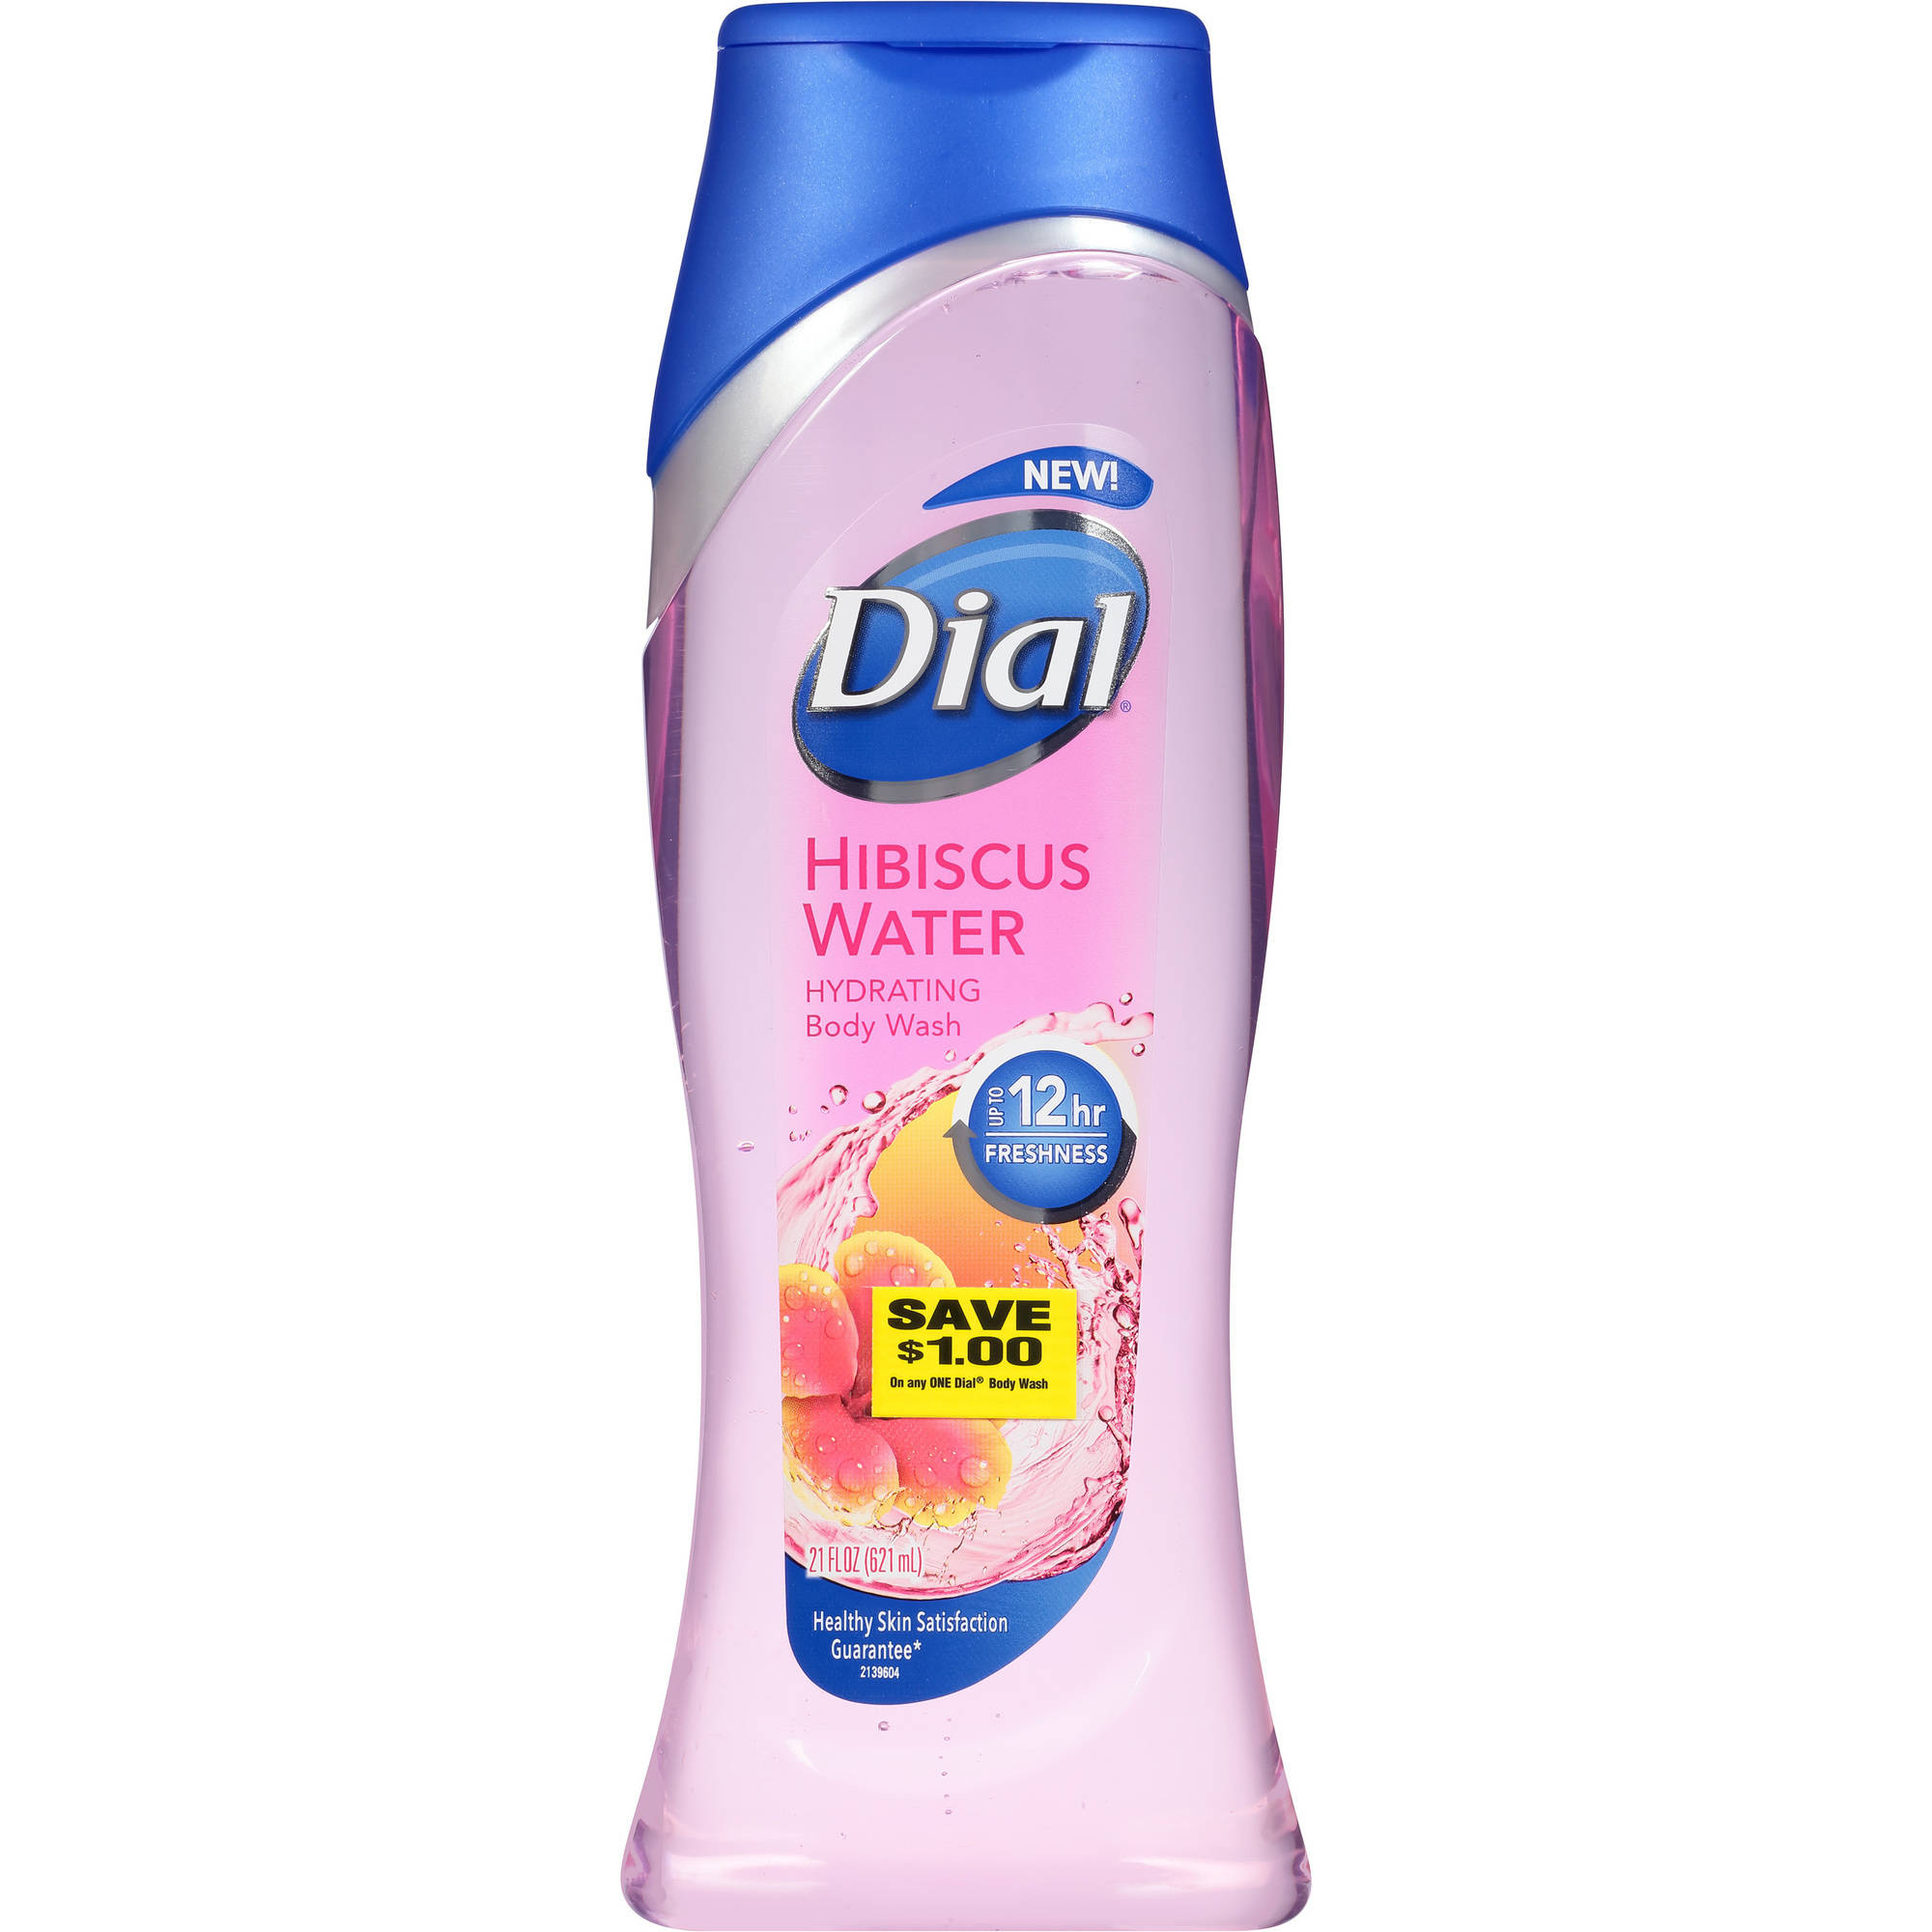 Dial Body Wash, Hibiscus Water with Up to 12 Hours of Freshness, 21 Fluid Ounces